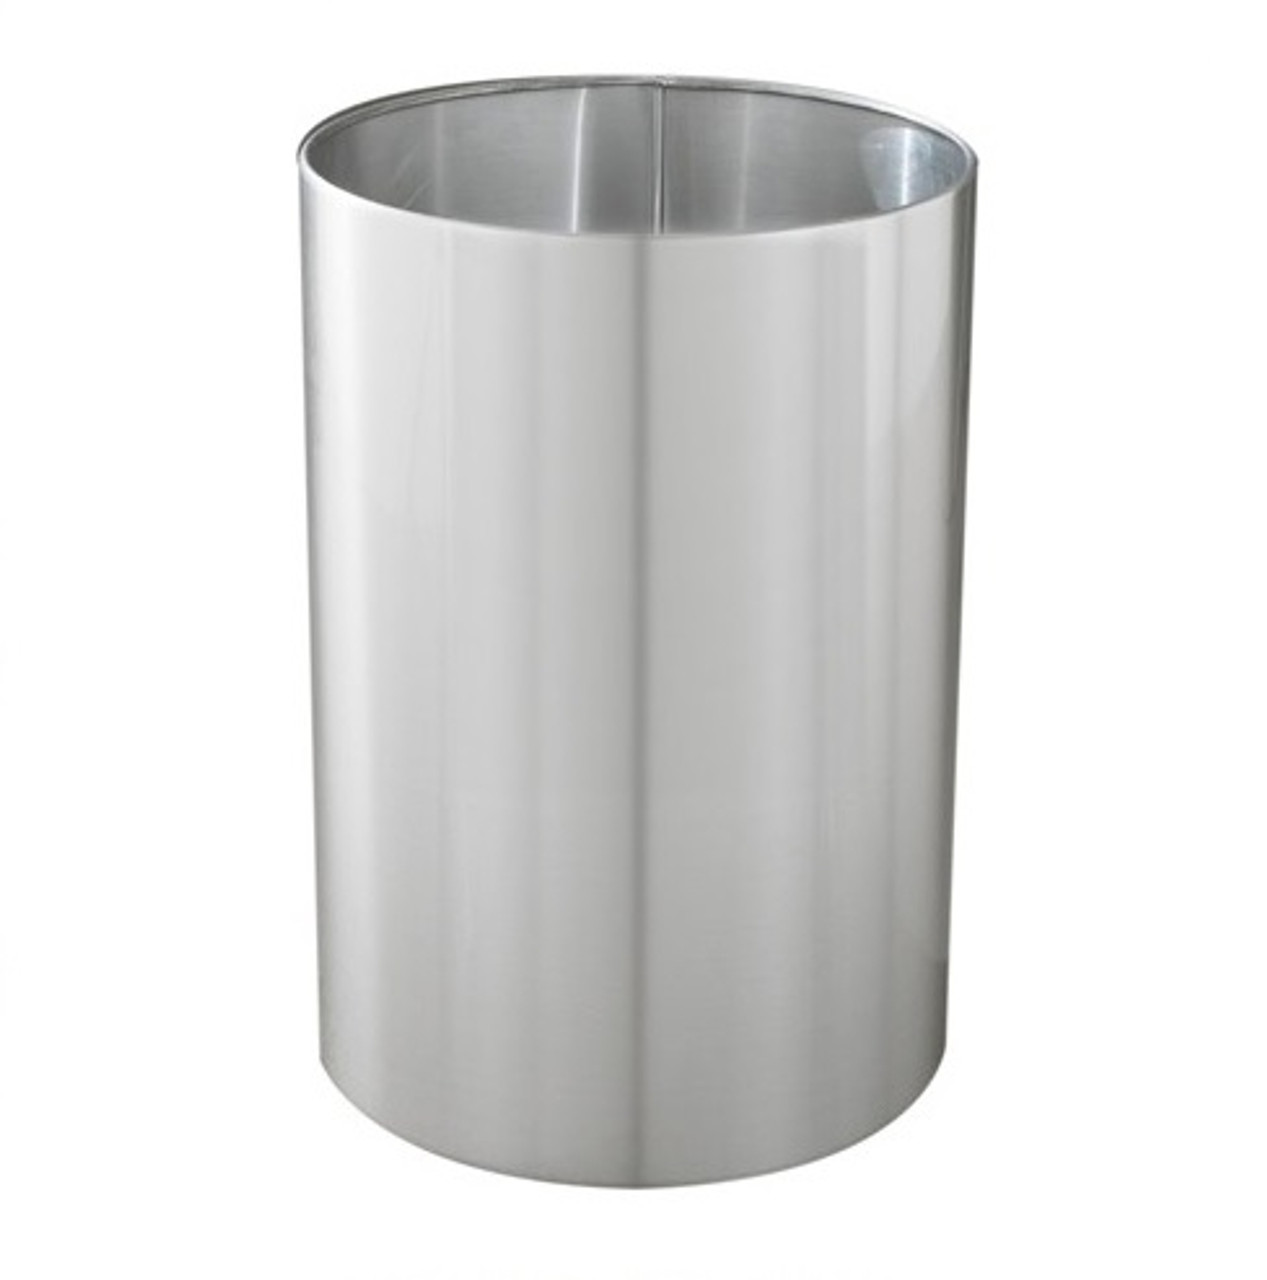 39 Gallon 20 x 29 Large Open Top Home Office Wastebasket Satin Aluminum